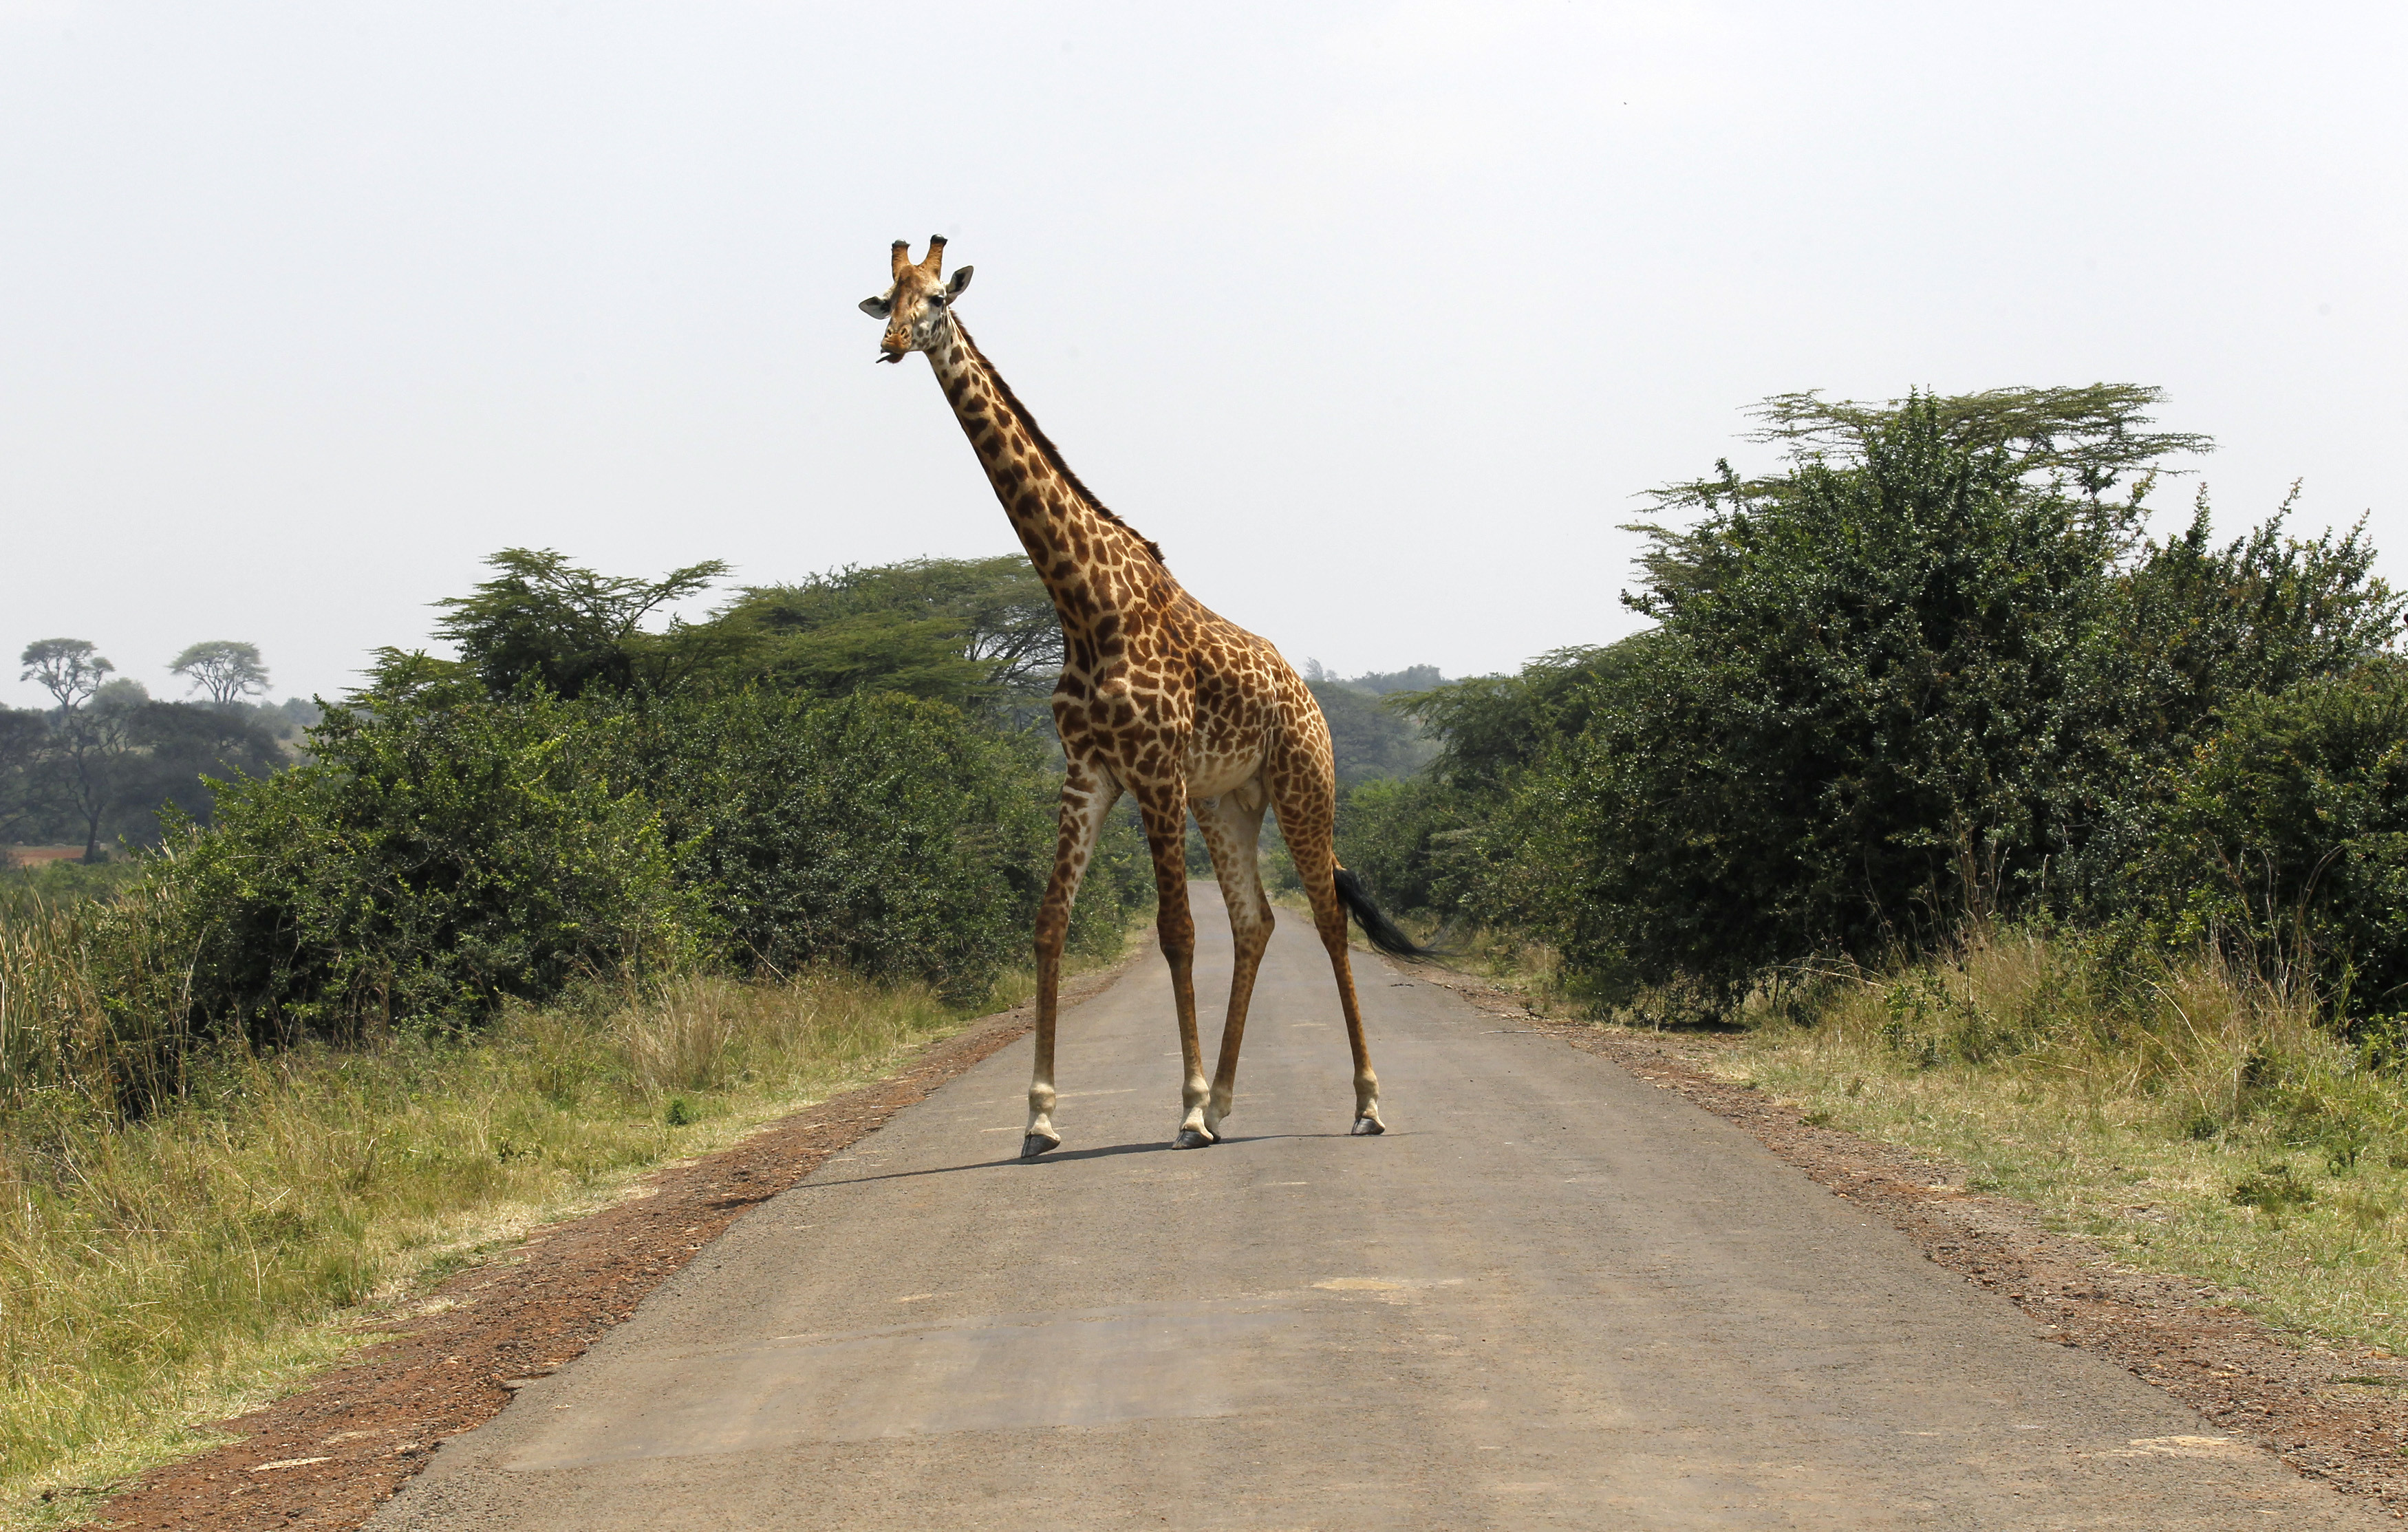 Giraffe Trade Is To Be Regulated For The First Time Says Cites World Economic Forum